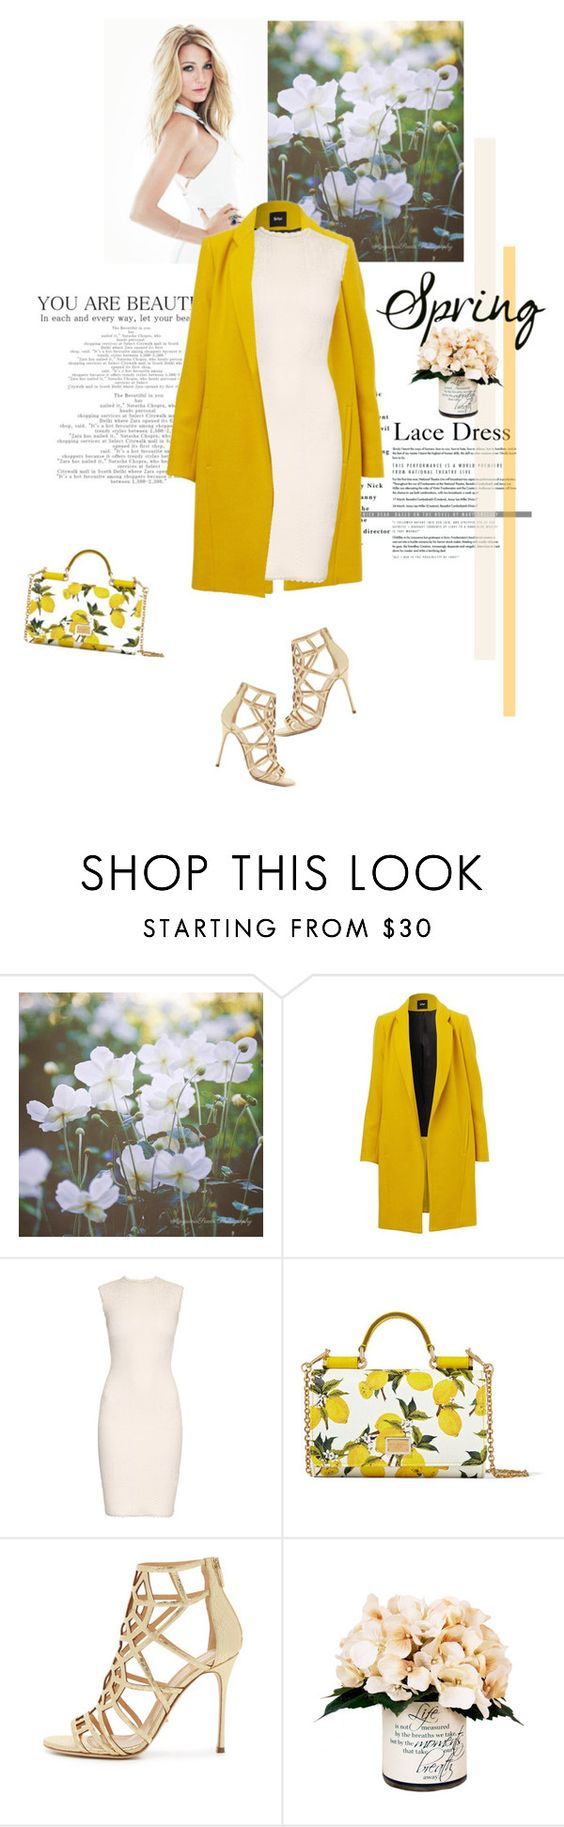 """Lovely Lace Dress"" by mycherryblossom on Polyvore featuring Alexander McQueen, Dolce&Gabbana, Sergio Rossi and Creative Displays"